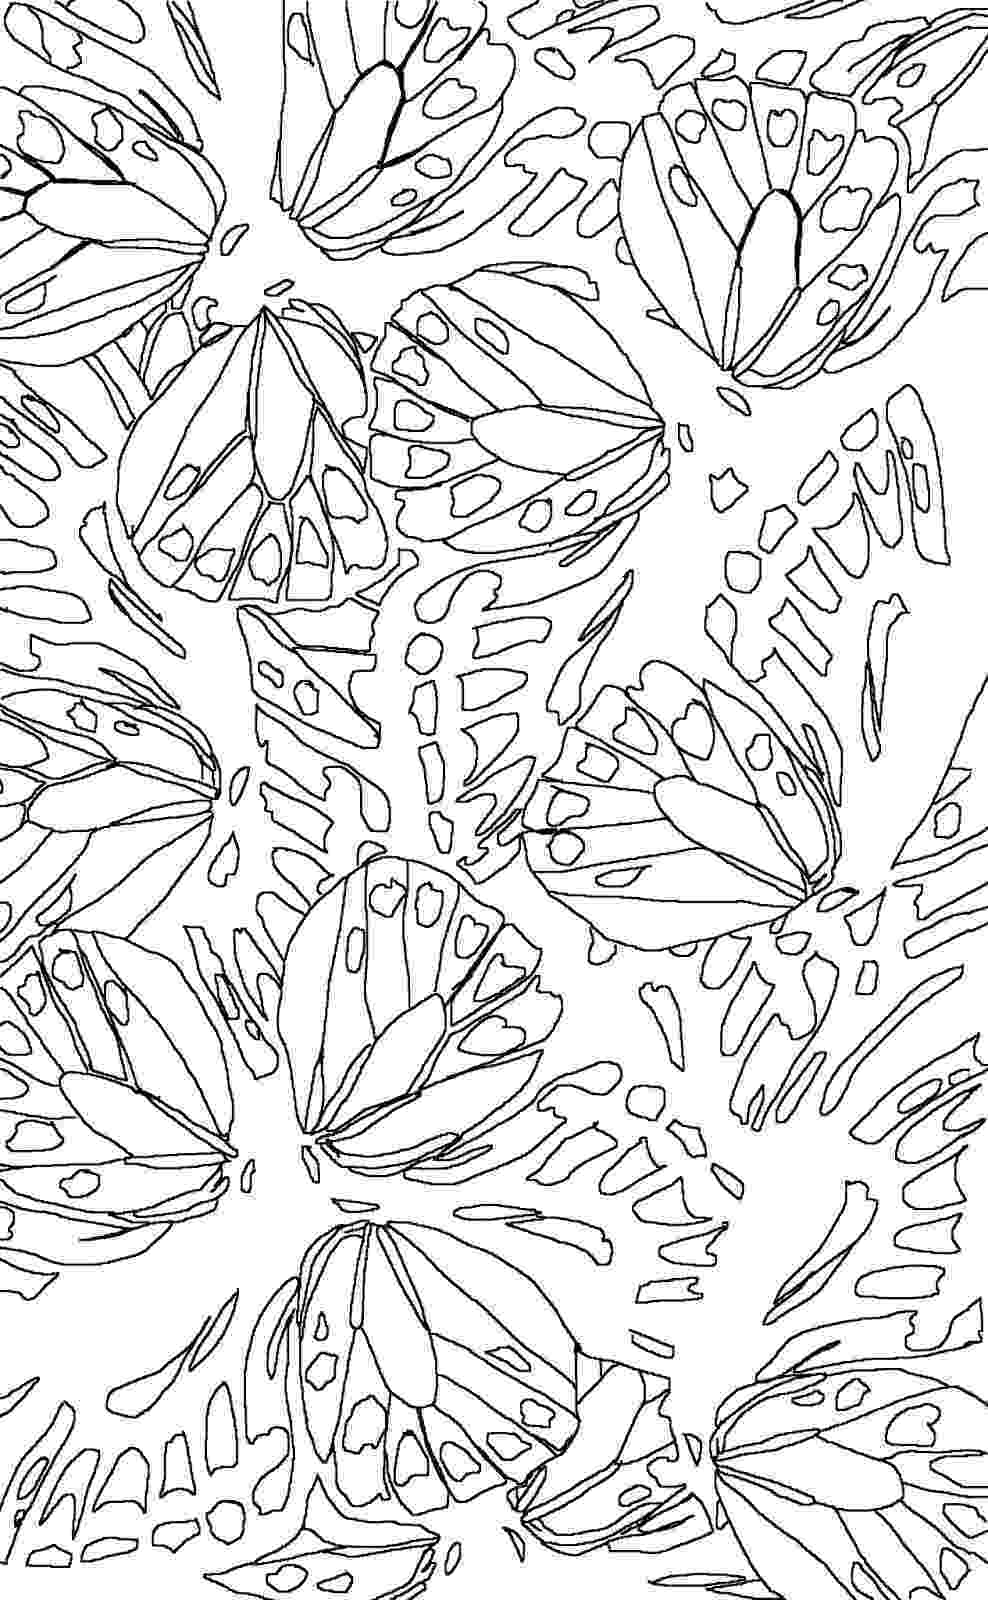 coloring pigs free printable tangled coloring pages for kids cool2bkids pigs coloring